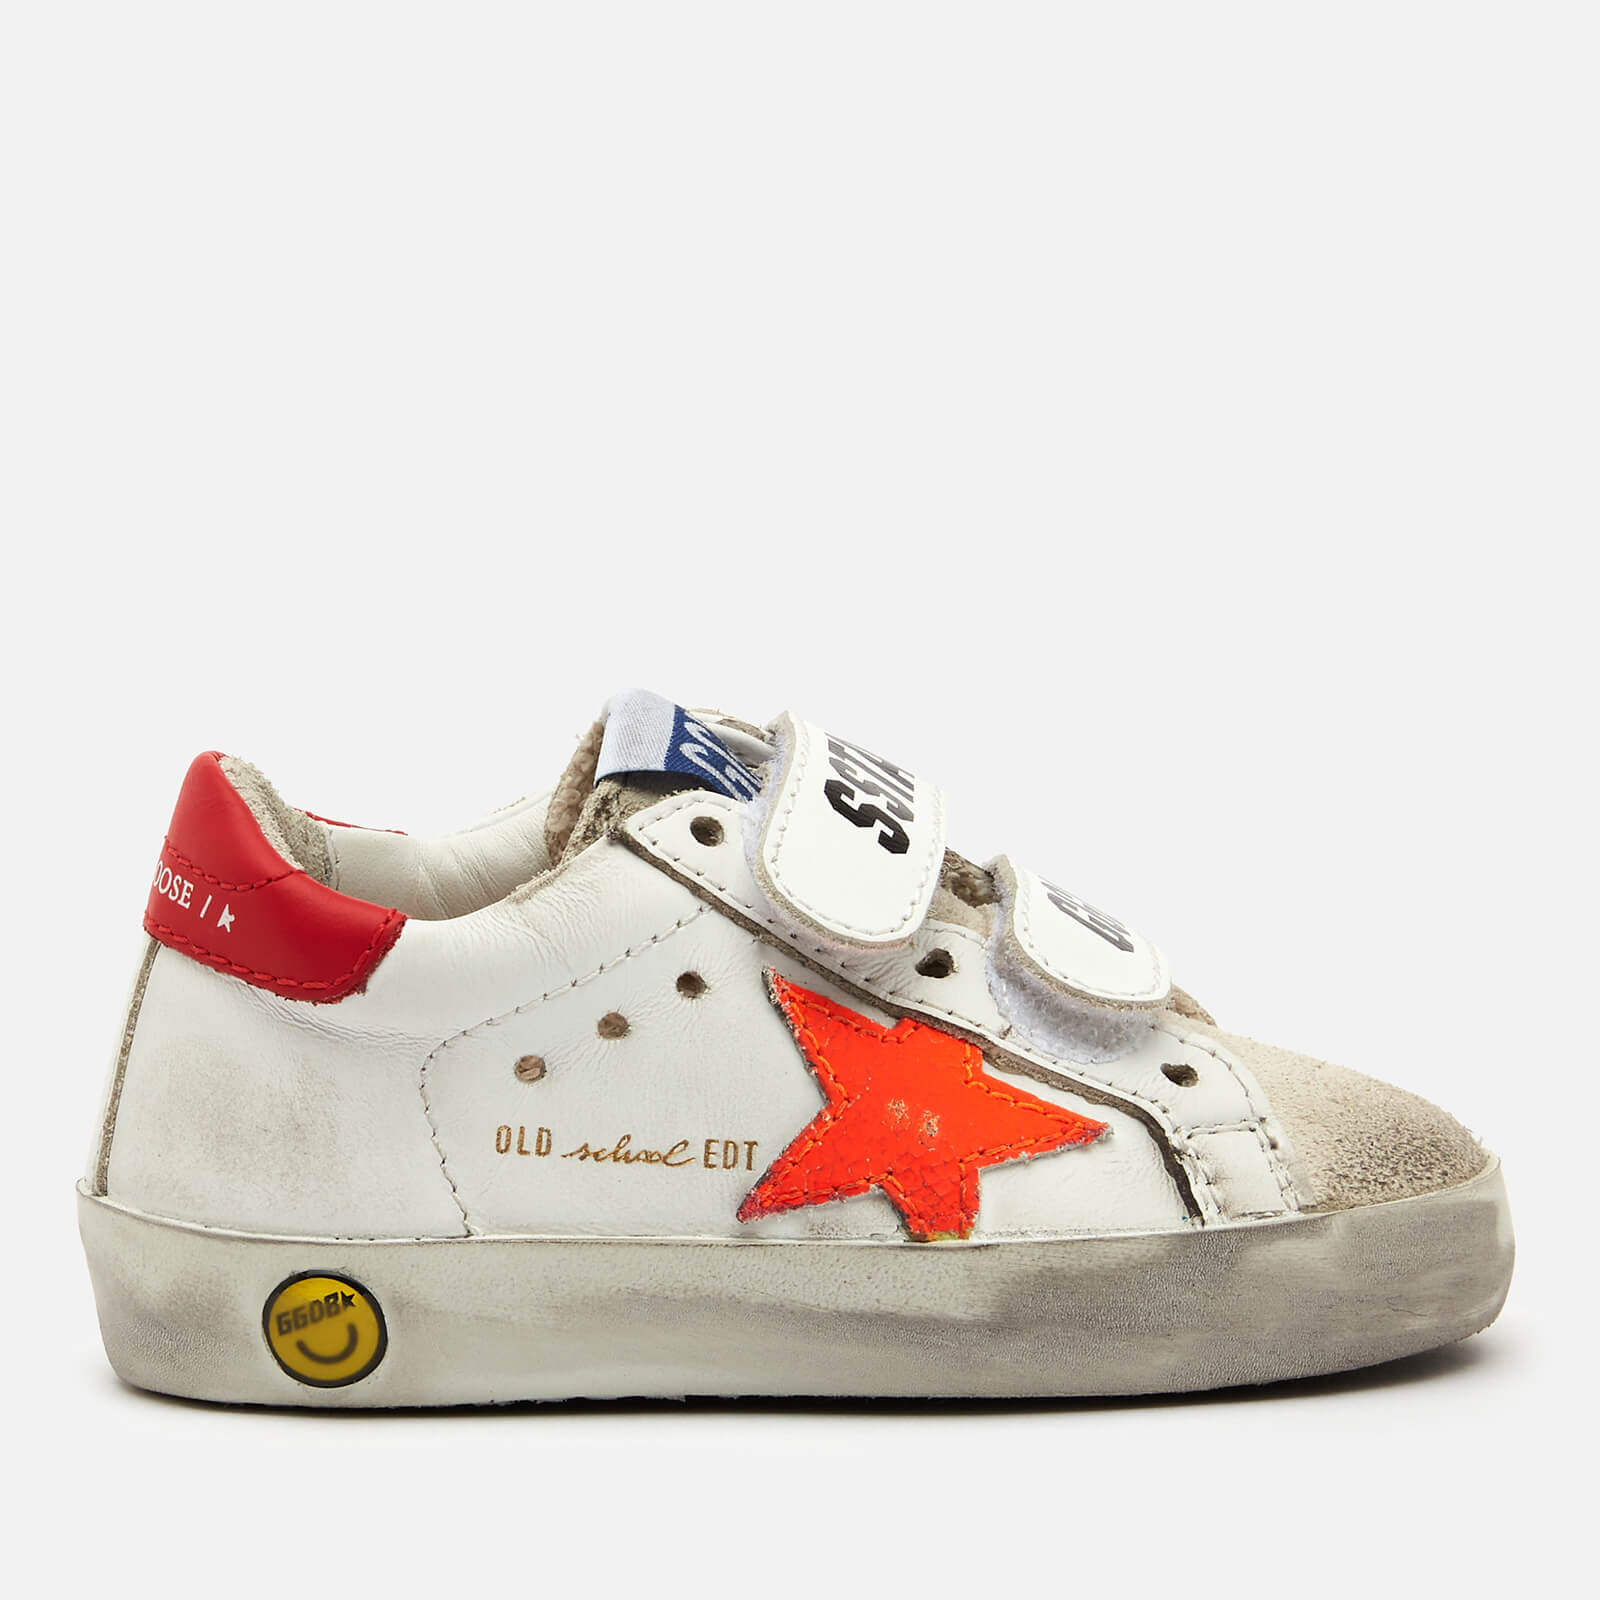 Golden Goose Deluxe Brand Toddlers' Old School Leather Trainers - White/Ice/Orange Fluo/Cherry Red - UK 5 Toddler